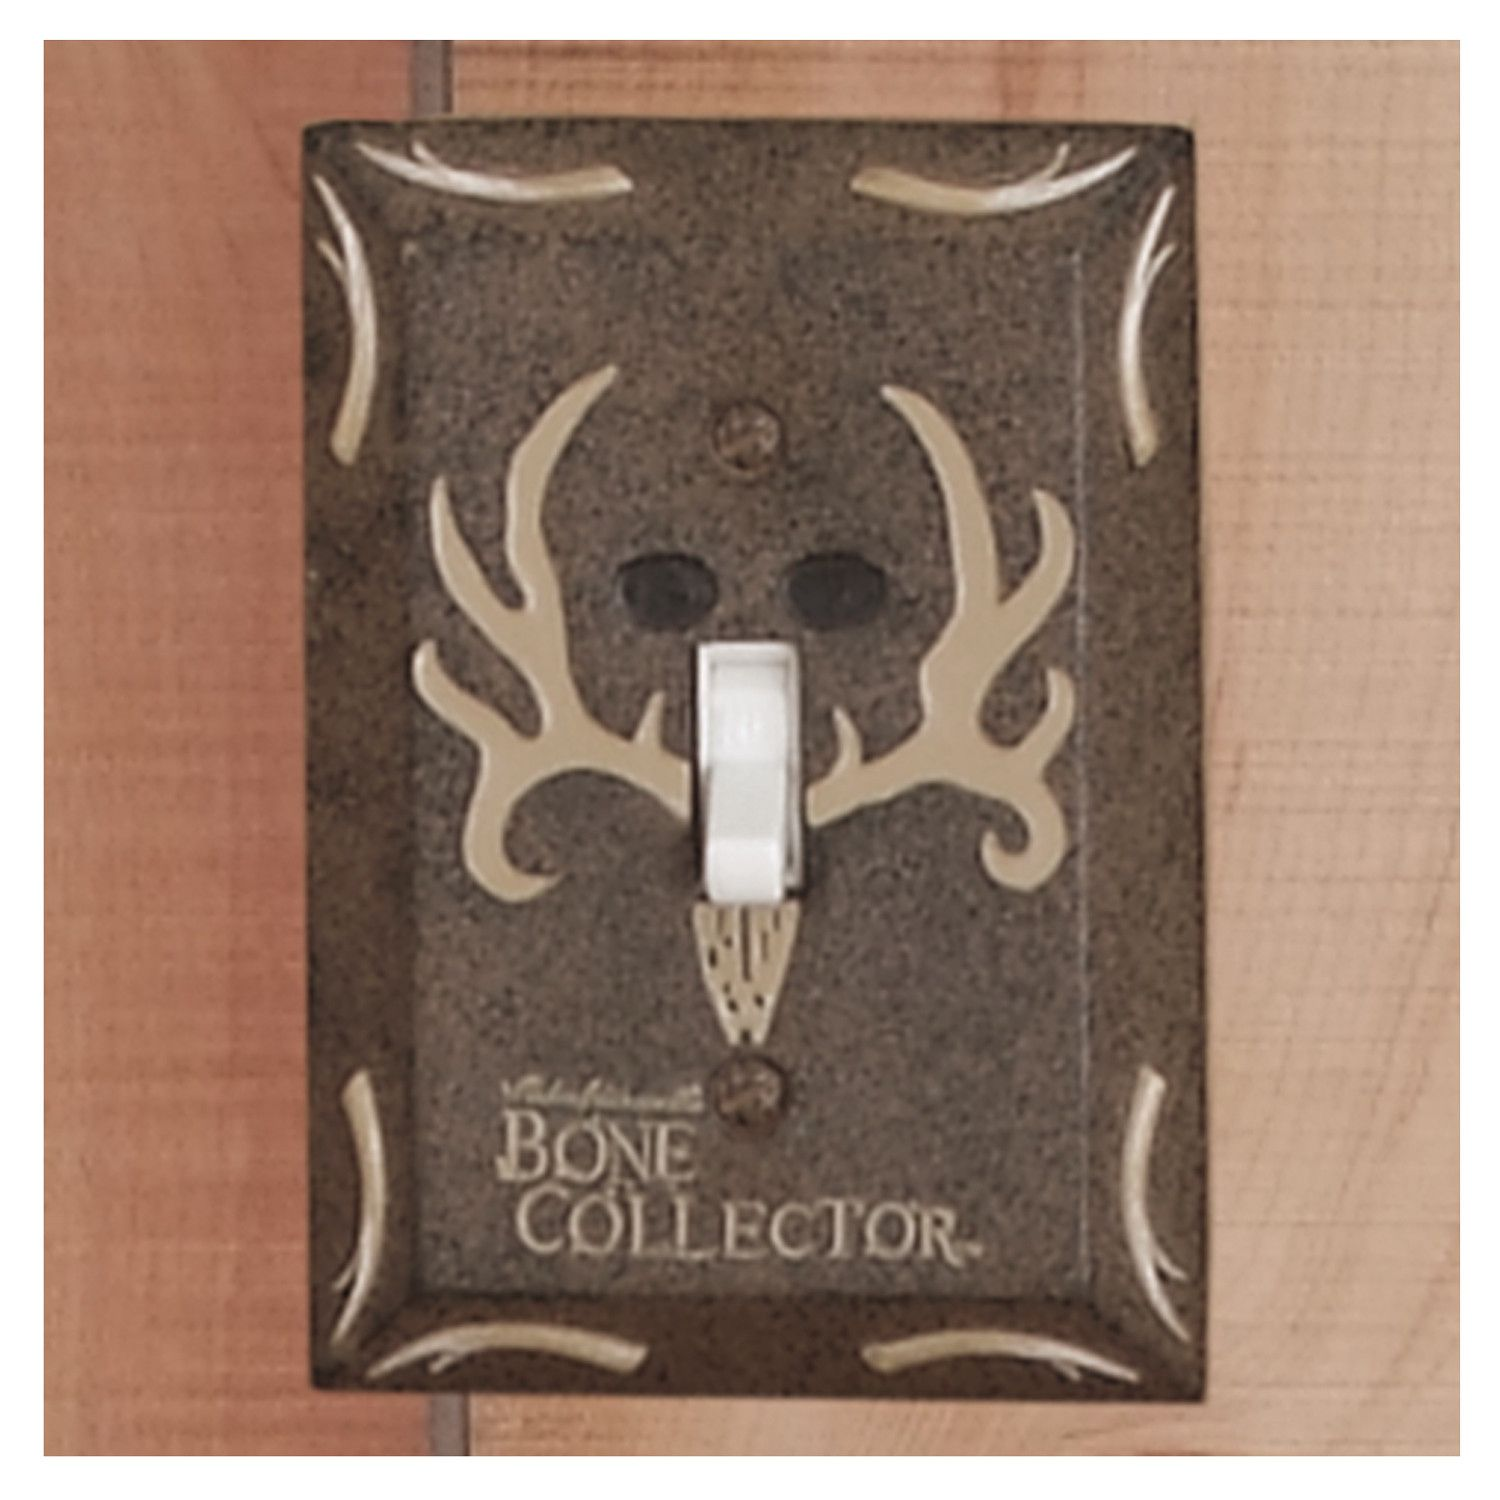 Bone Collector Bath Switchplate Single Switch Plate Covers